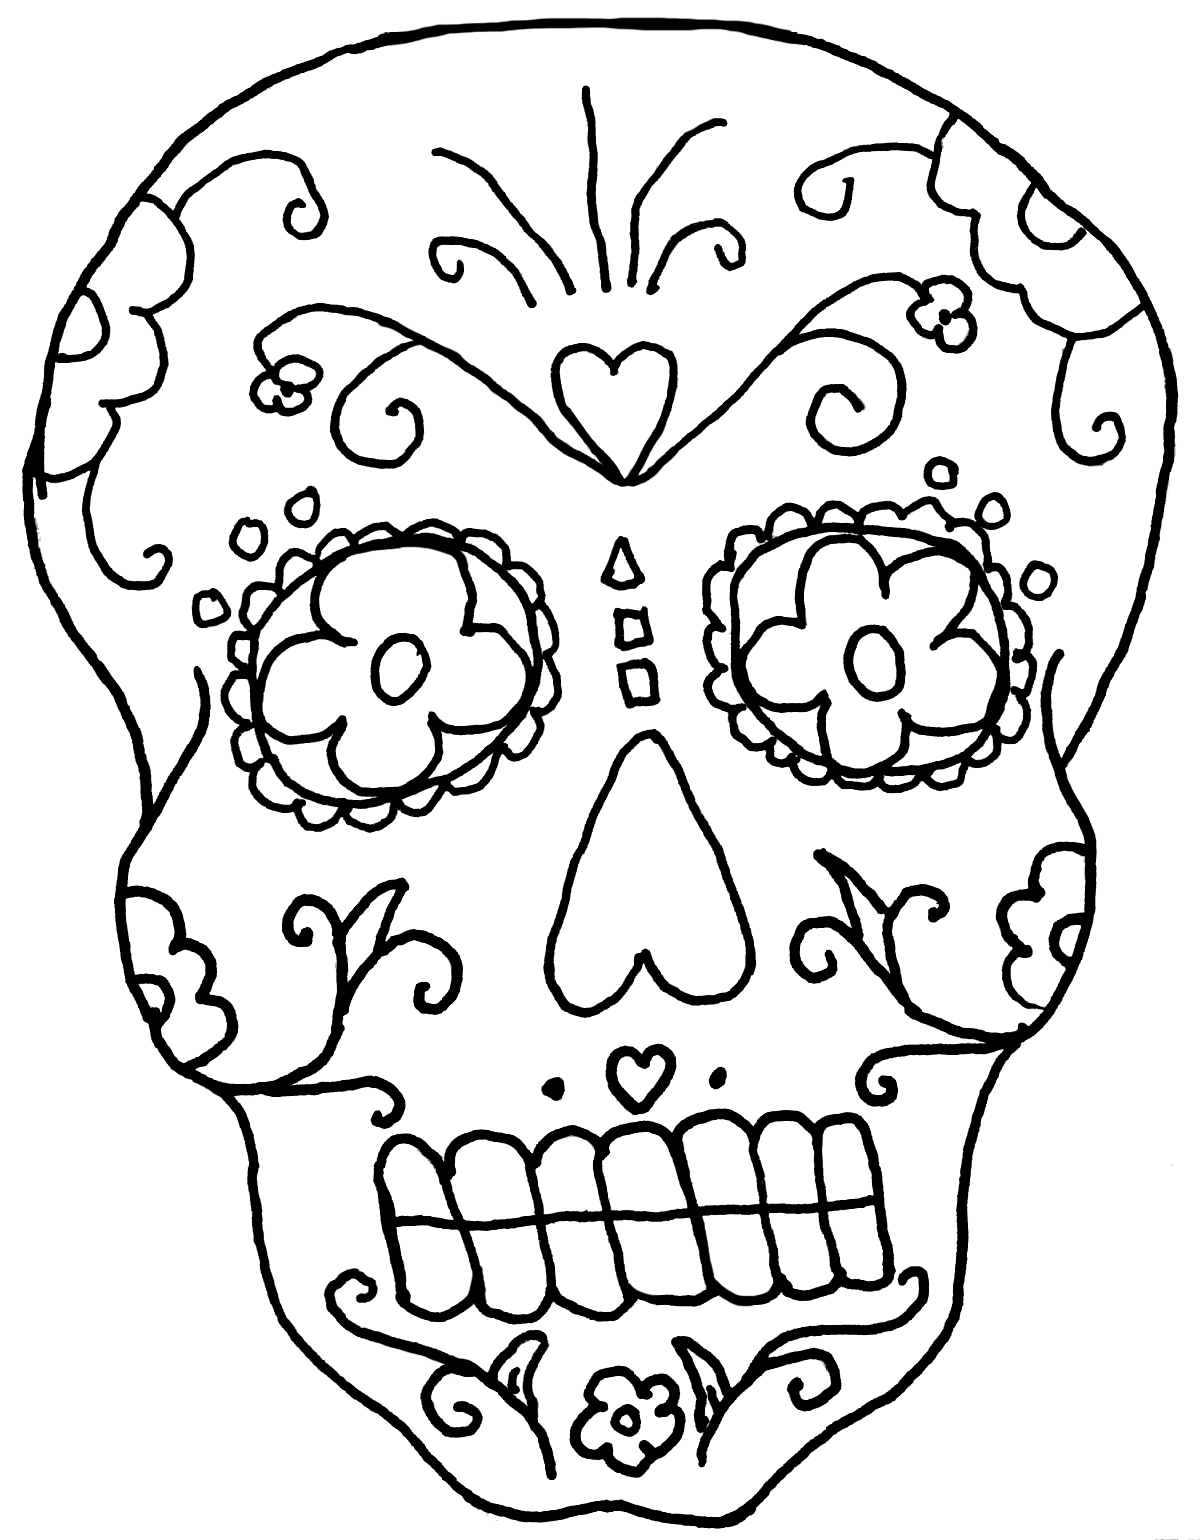 Skeleton Face Coloring Page At Getcolorings